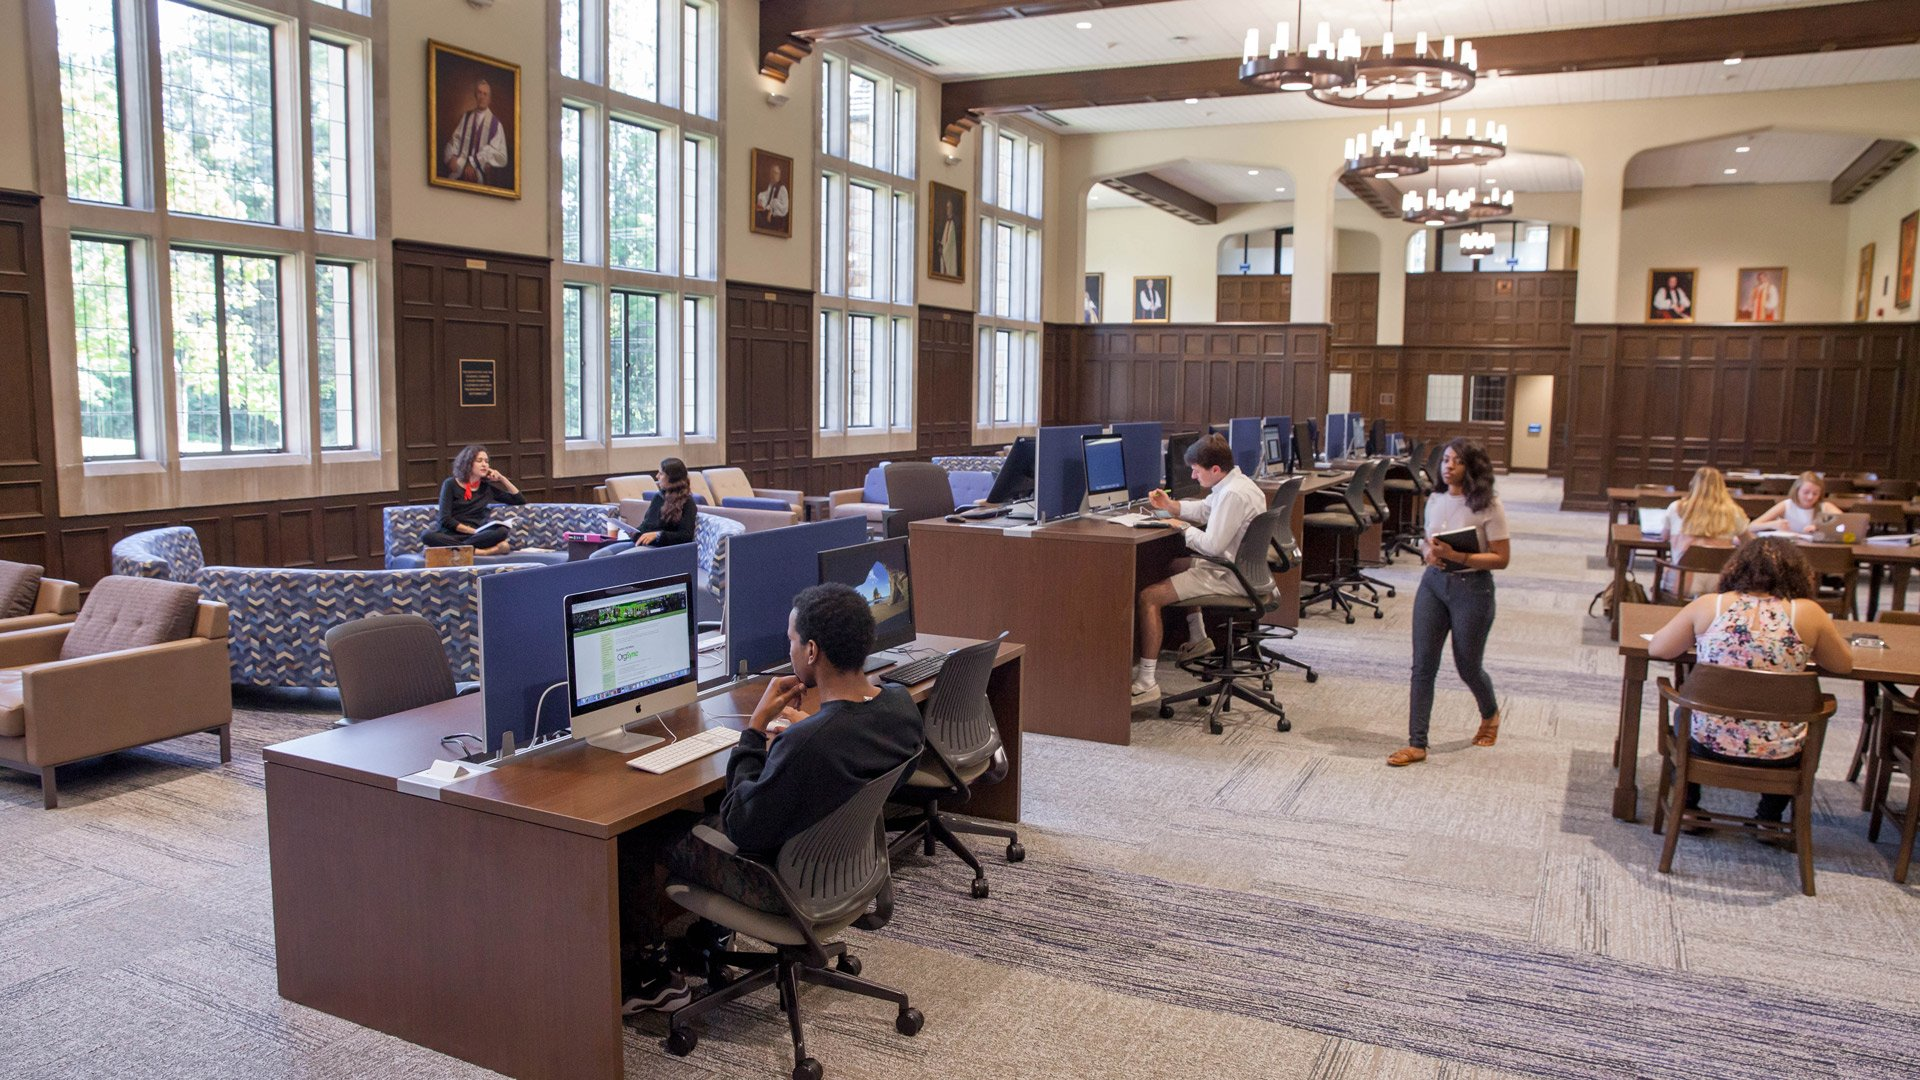 Sewanee / The University of the South, duPont Library